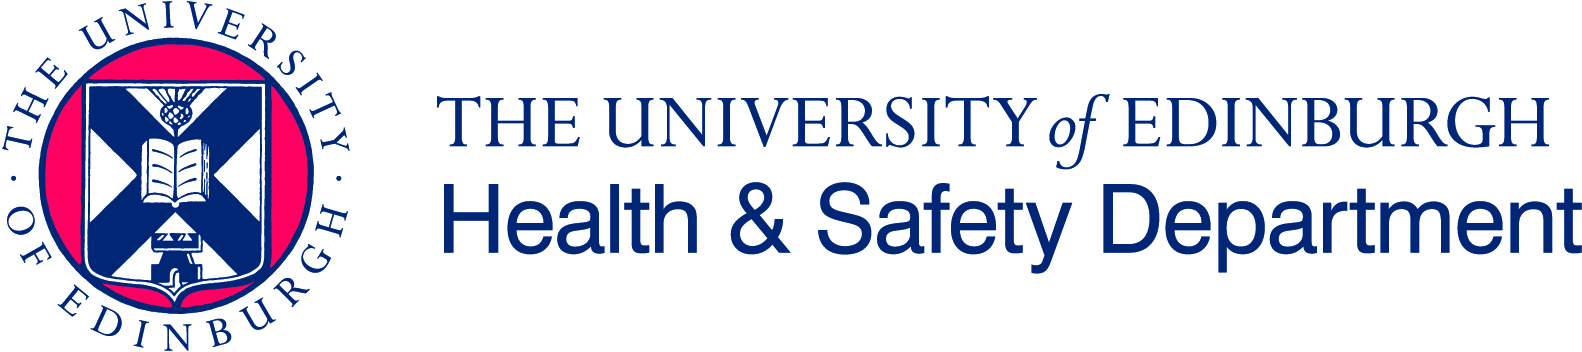 Health and Safety Department logo